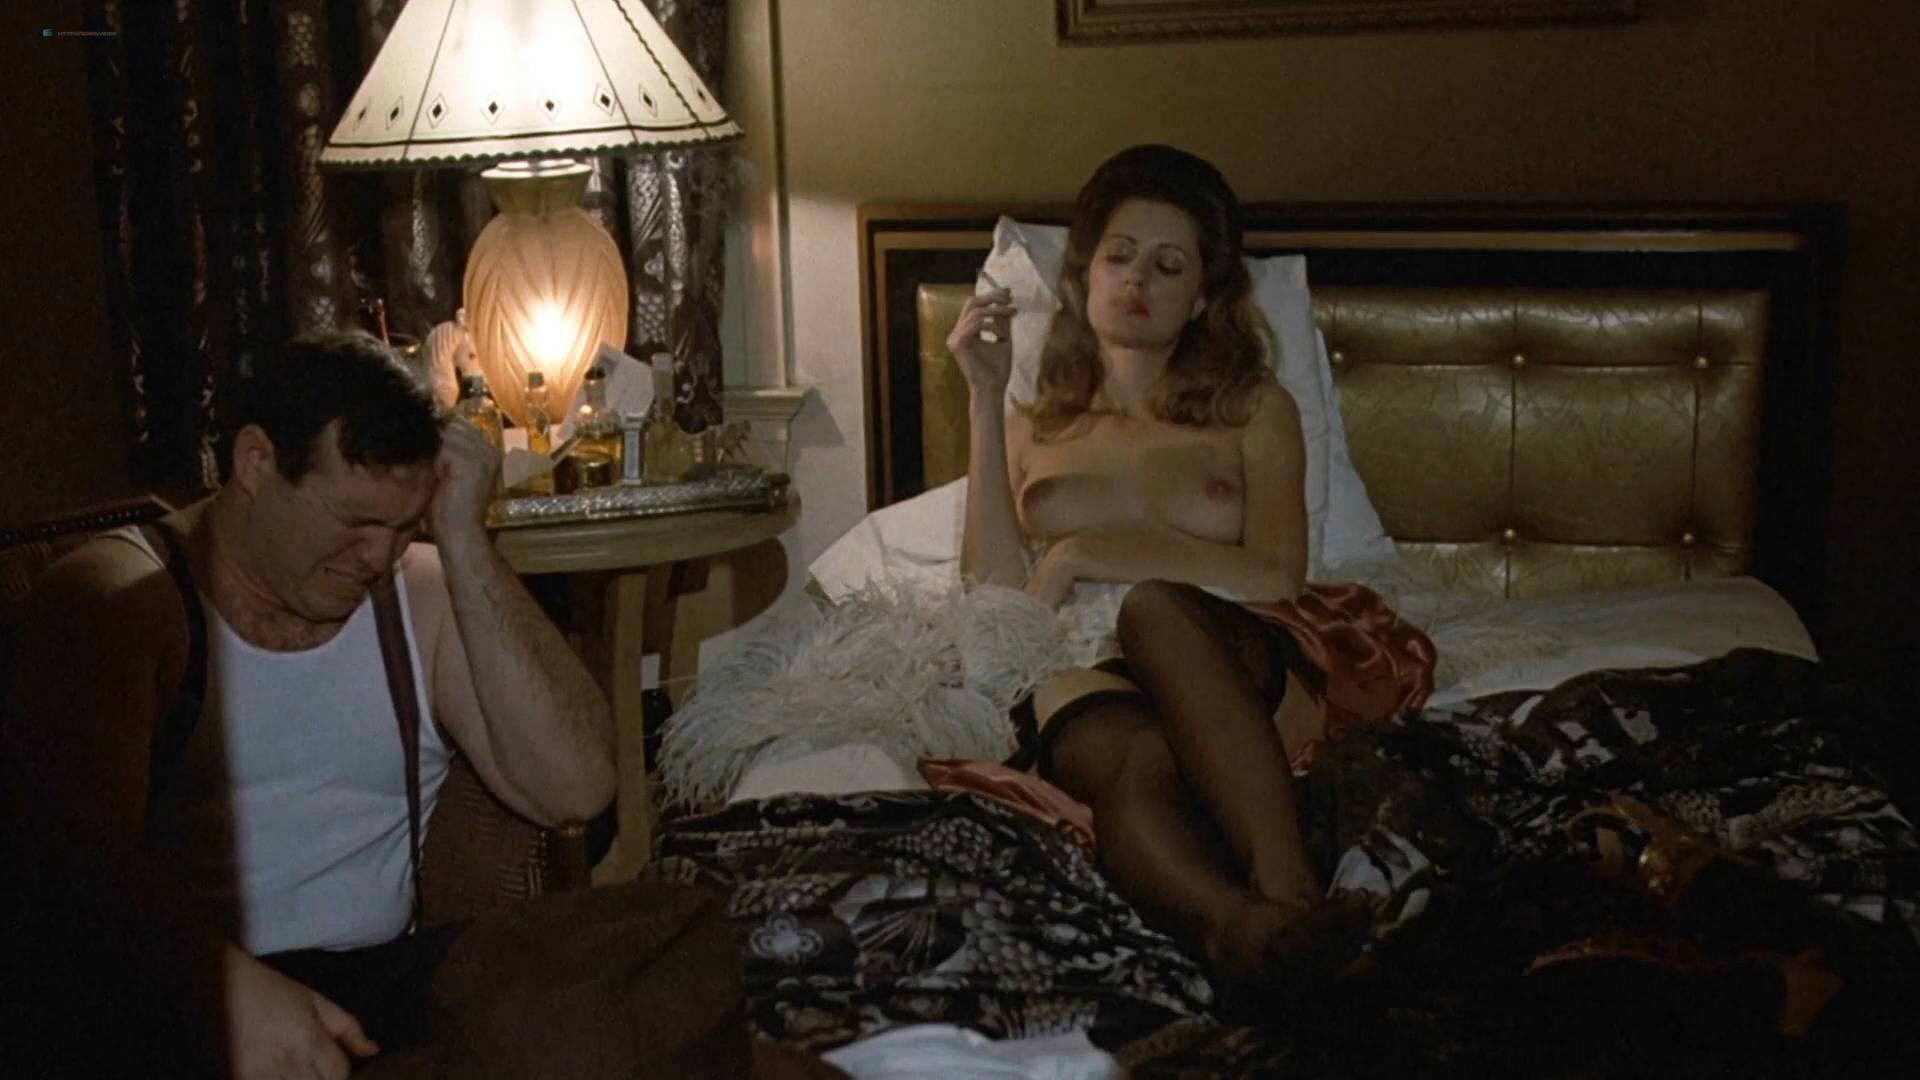 Cheryl Smith nude full frontal - Farewell, My Lovely (1975) HD 1080p BluRay (7)